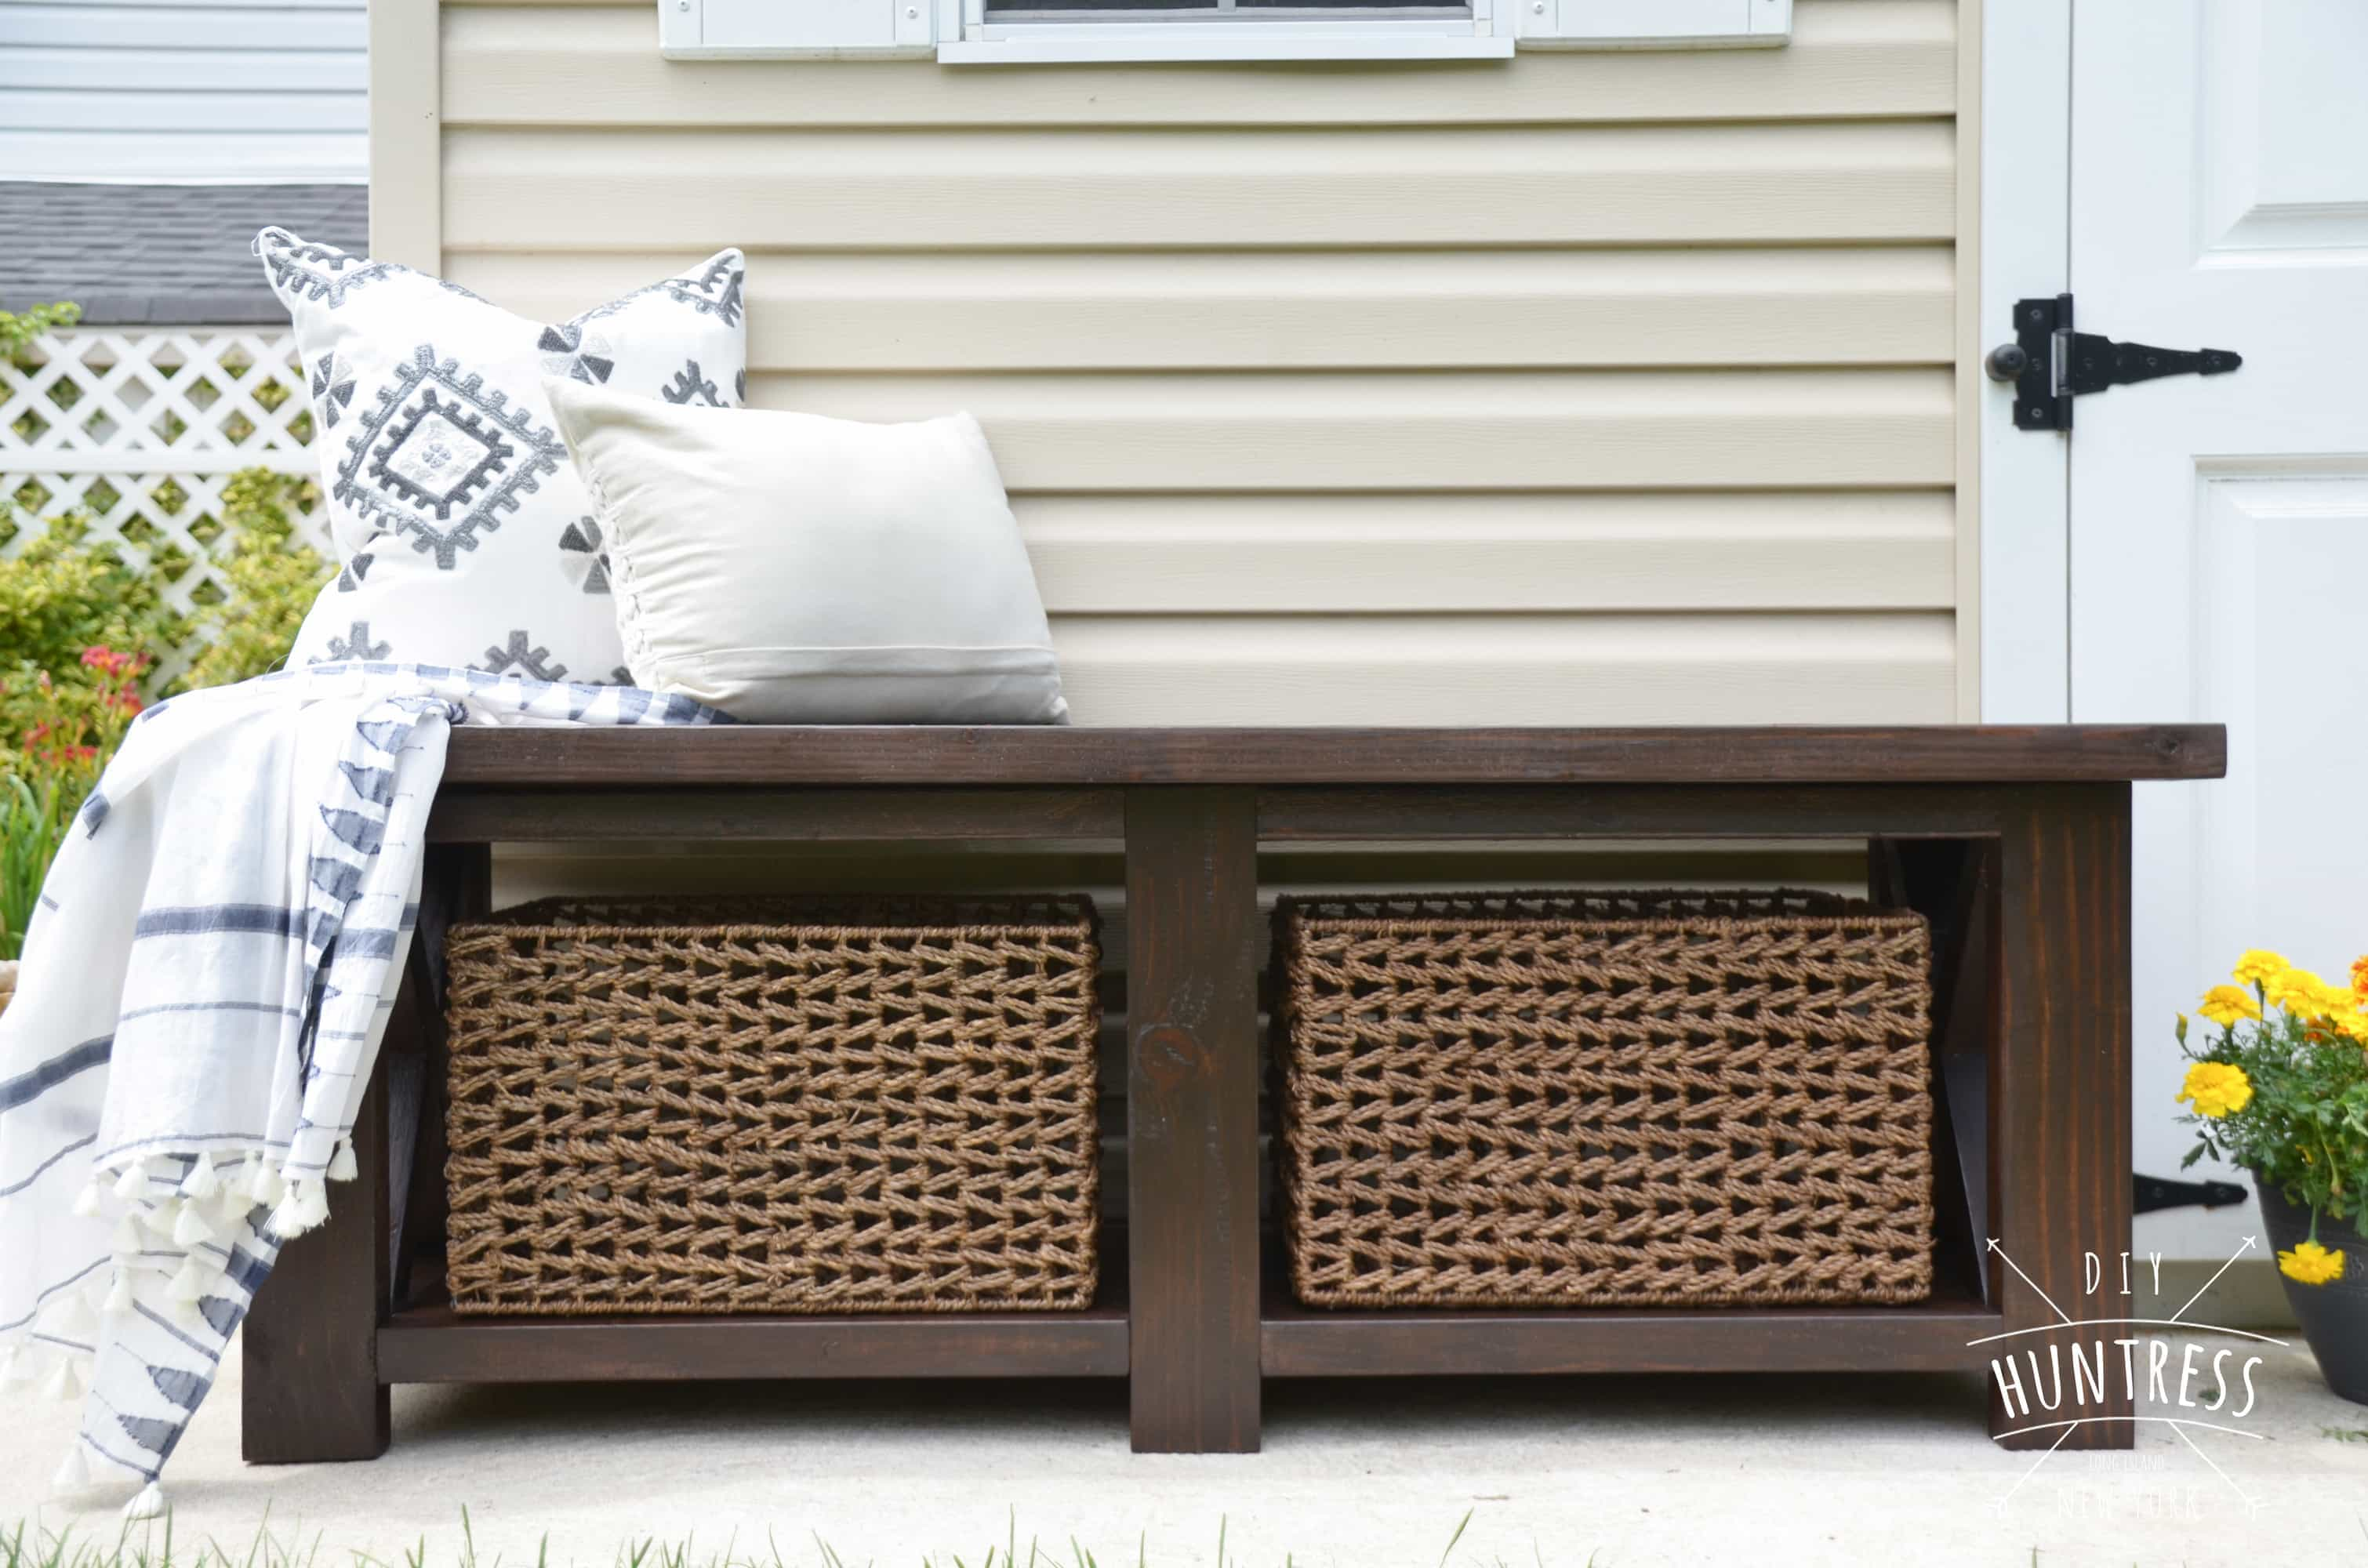 DIY_Huntress_Rustic_X_Bench-9